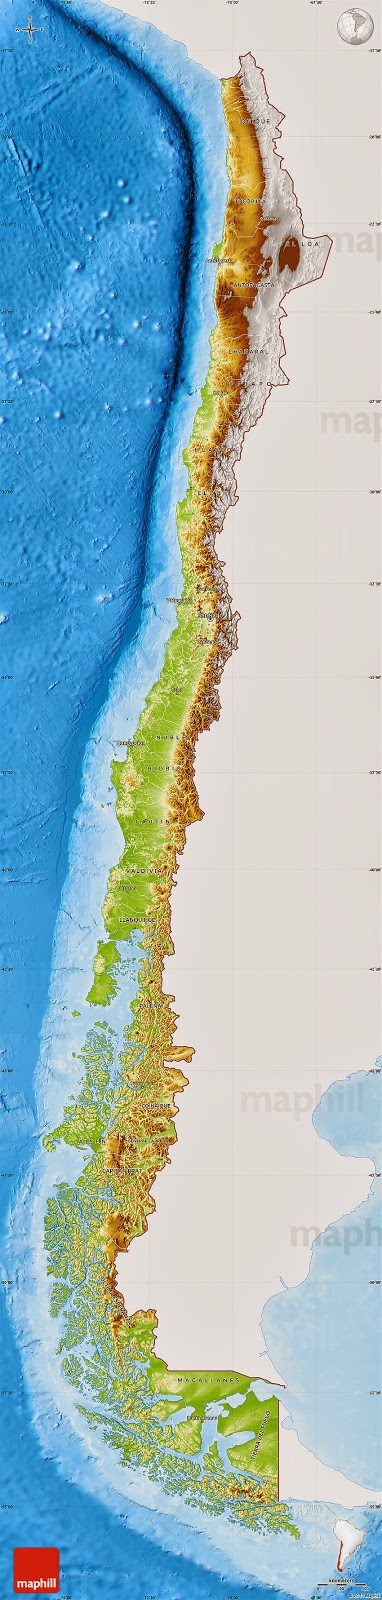 Chile | Mapas Geográficos do Chile